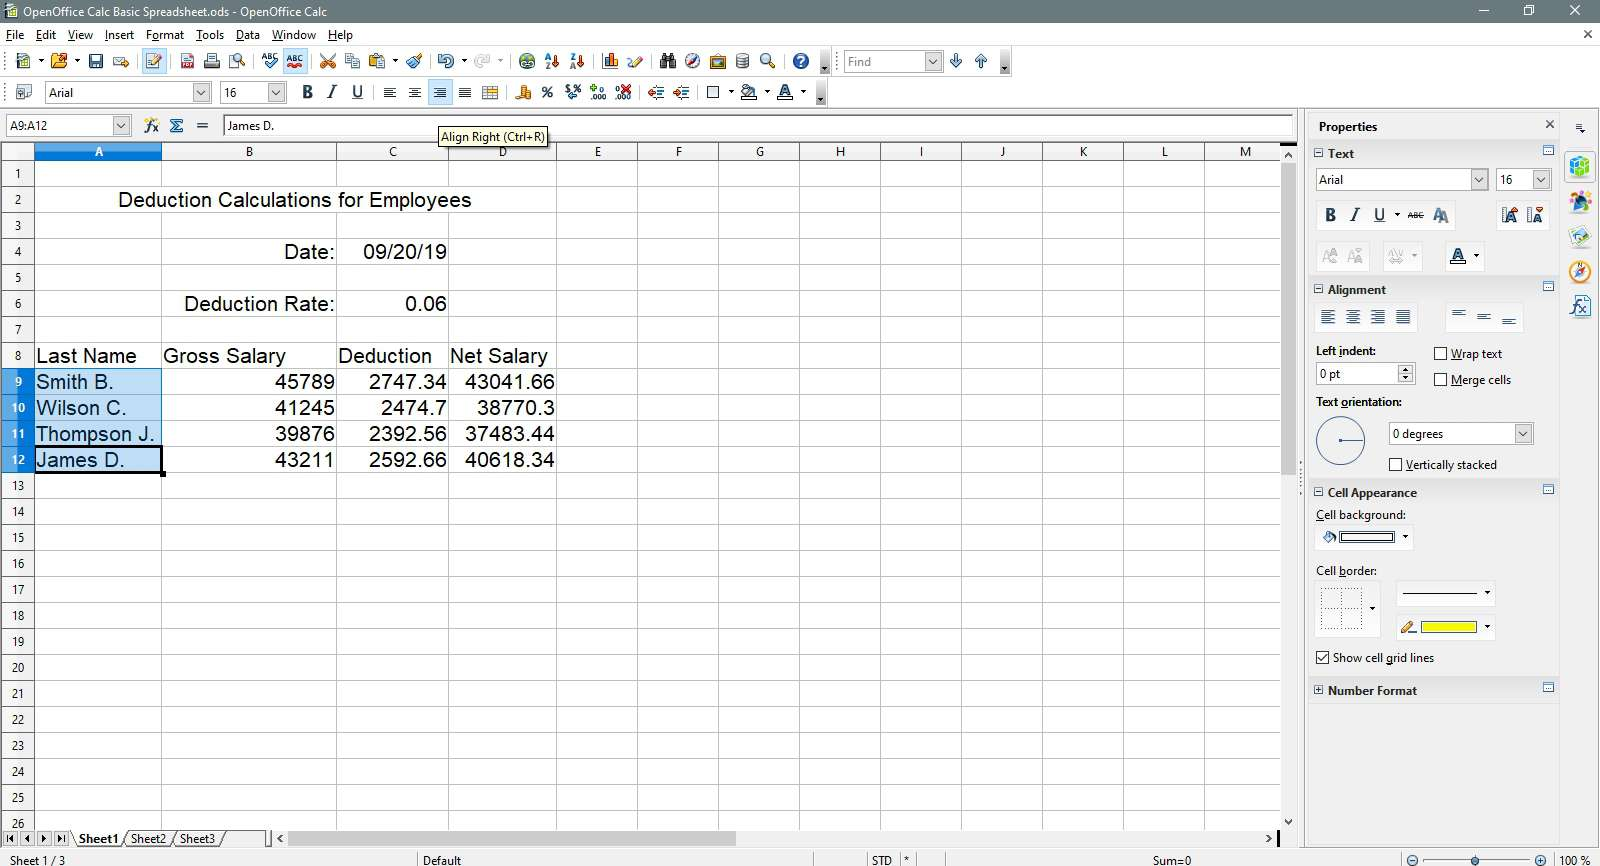 The names are being aligned right in OpenOffice Calc.